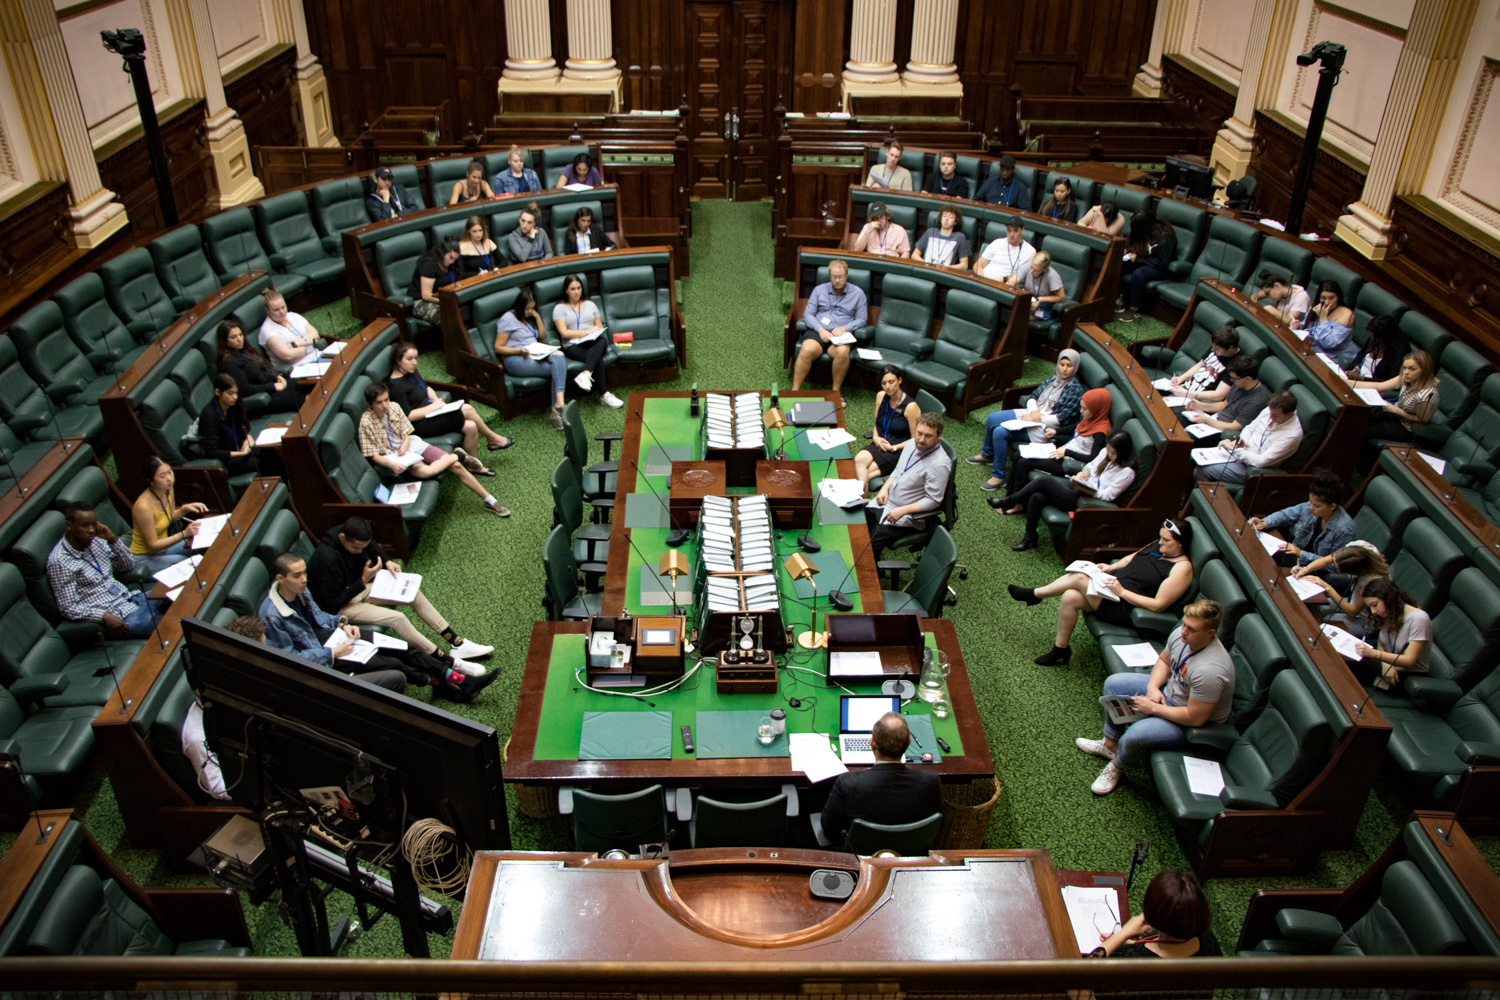 Parliament Explained - Victoria University lecture in the Legislative Assembly